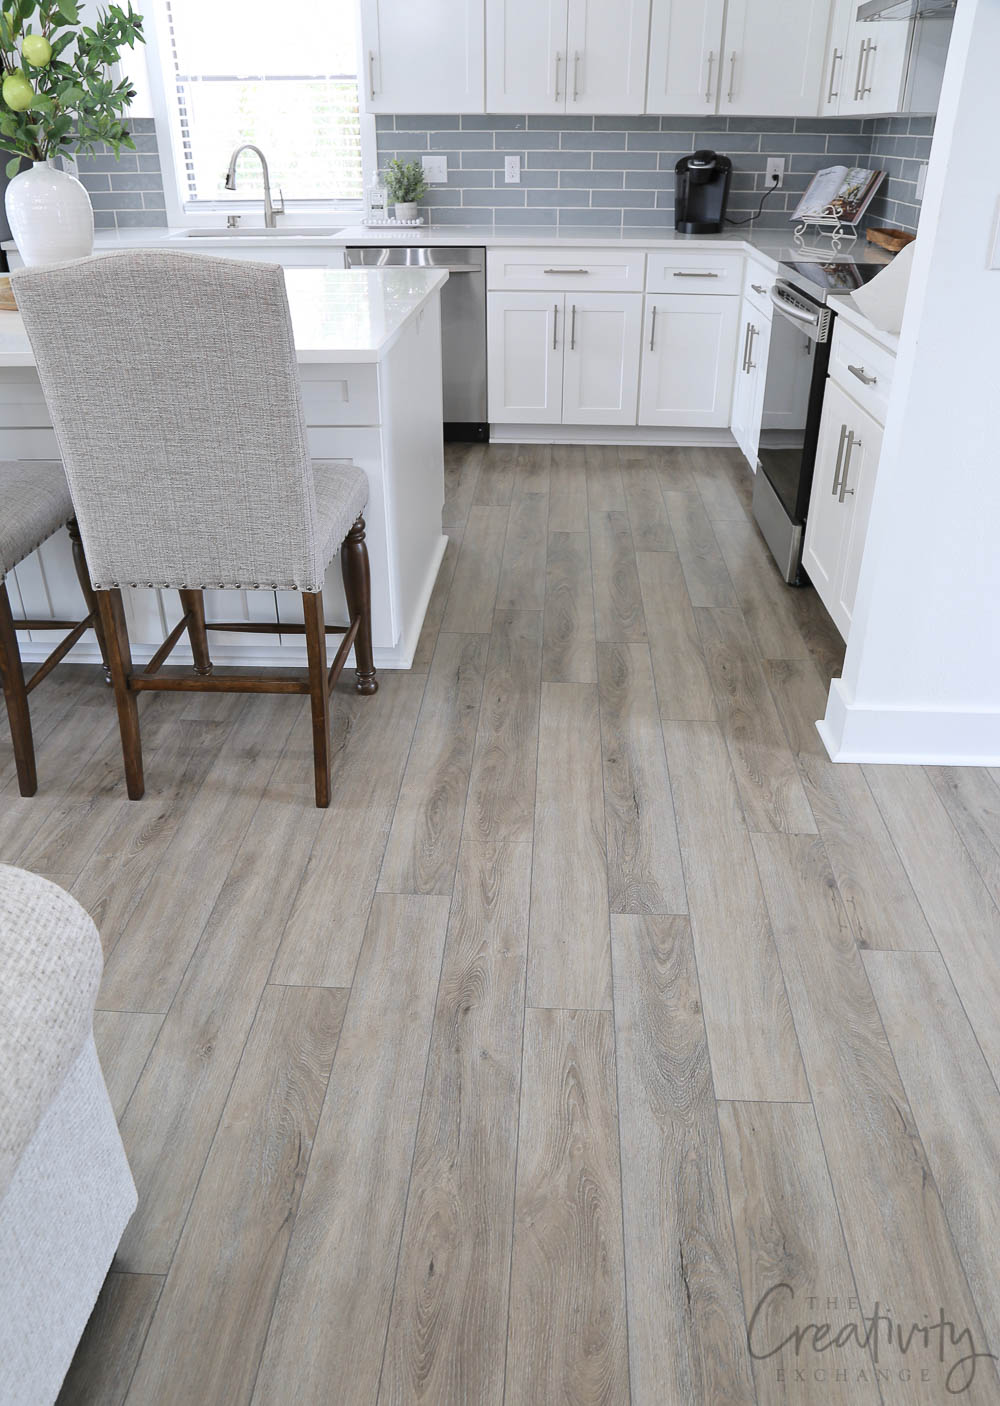 Stunning vinyl floors with a white oak look